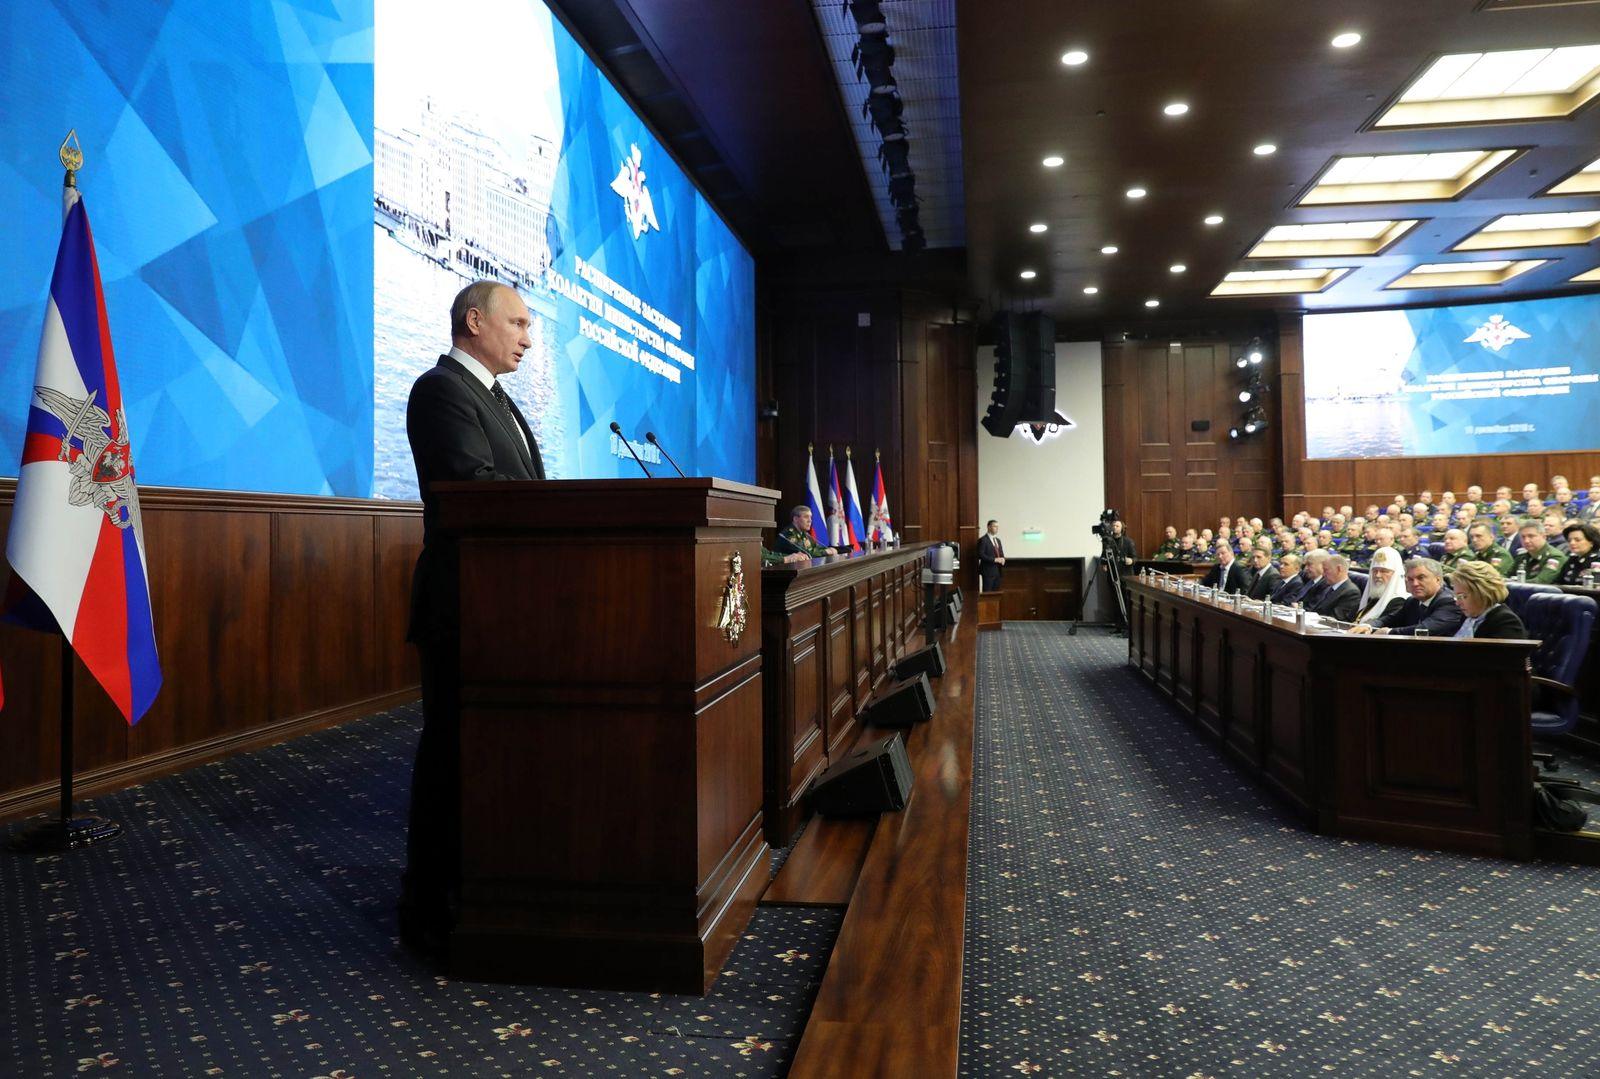 Russian President Vladimir Putin makes an address during a meeting in the Russian Defense Ministry's headquarters in Moscow, Russia, Tuesday, Dec. 18, 2018.{ } (Mikhail Klimentyev, Sputnik, Kremlin Pool Photo via AP)